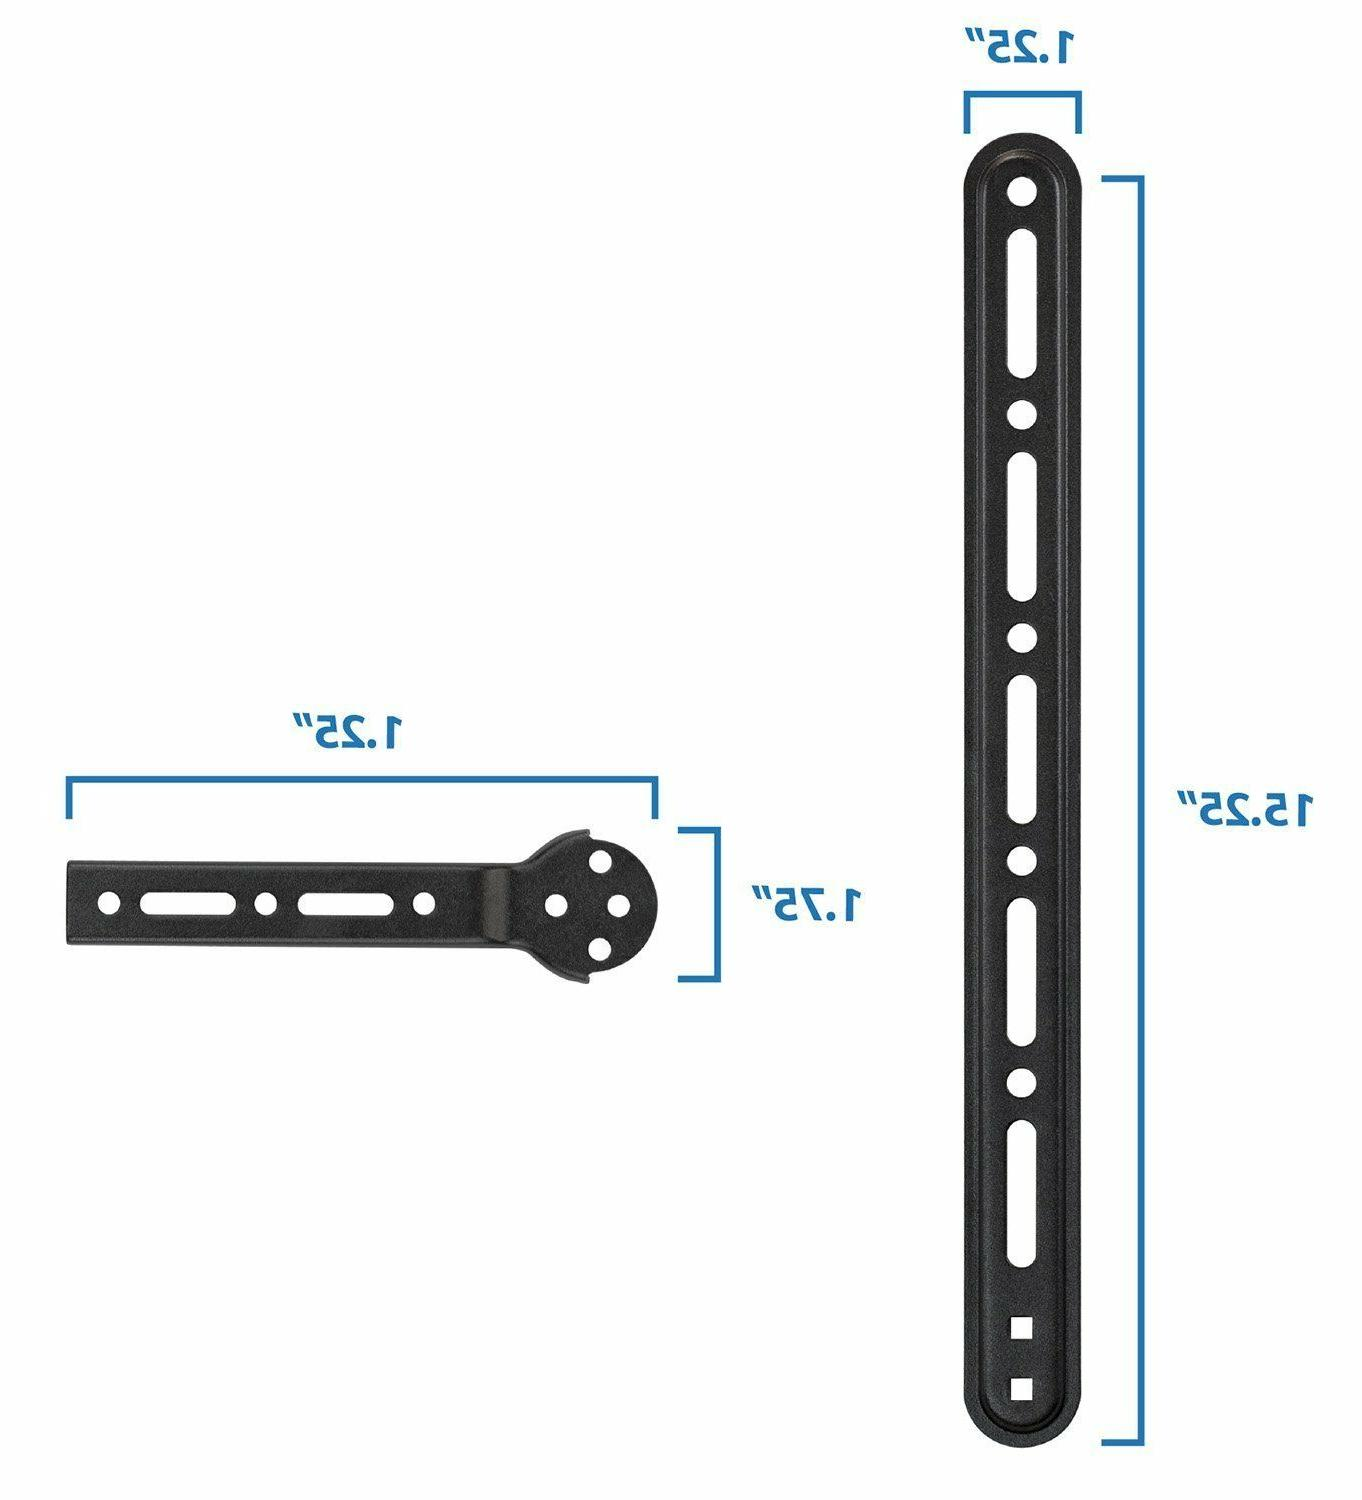 Mount-It! Universal Bracket For or Under - TV